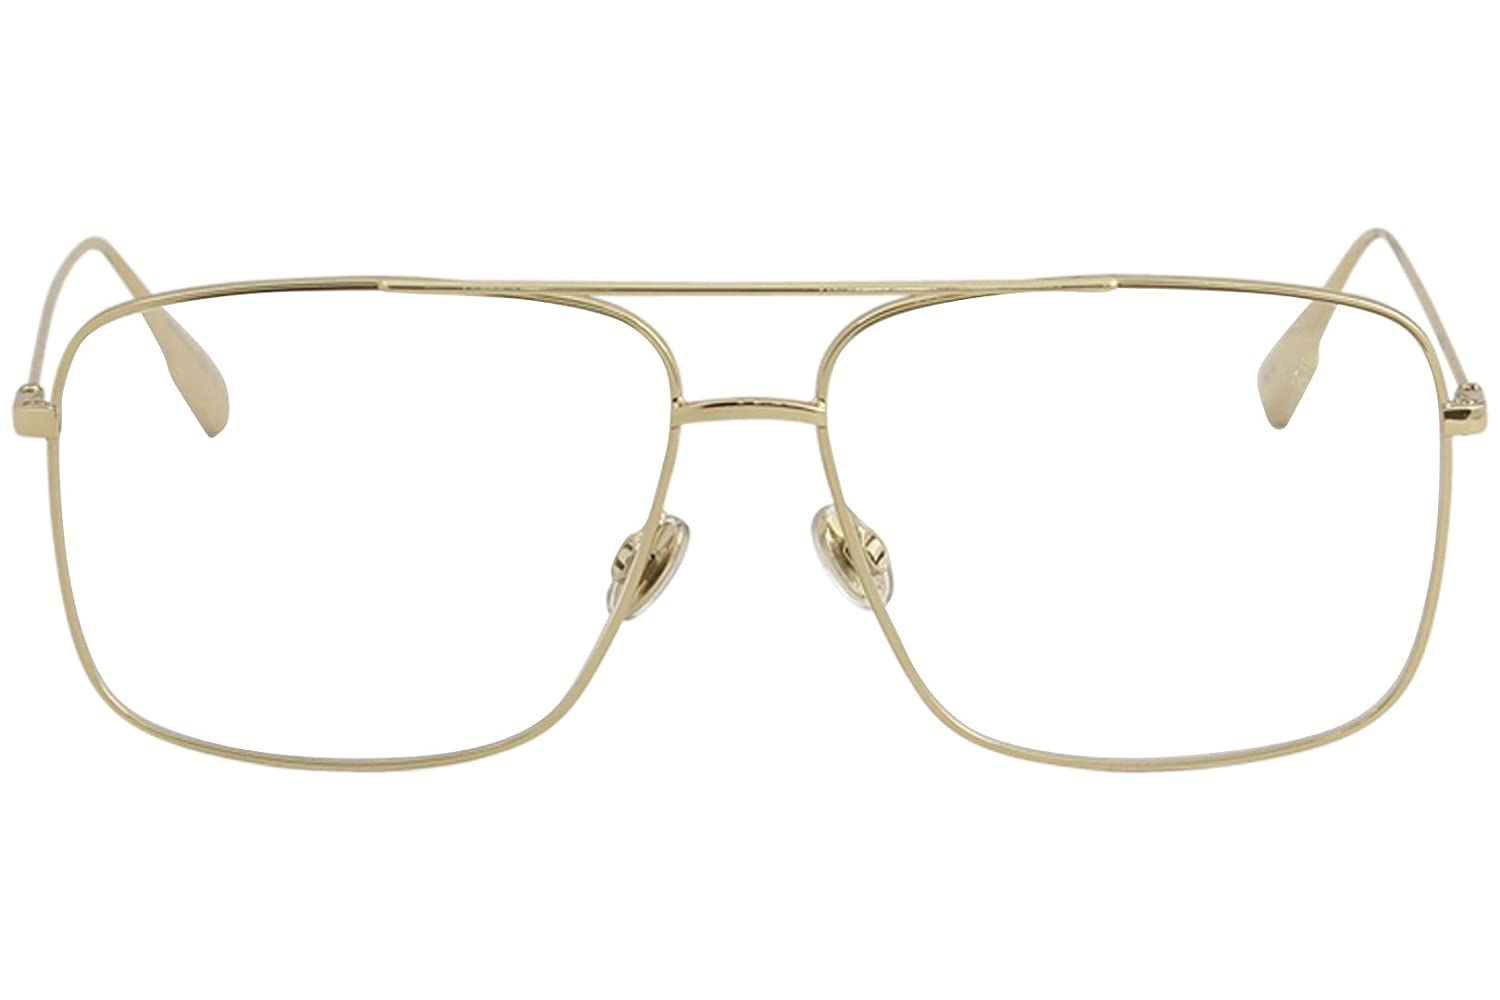 f305fd6434 Amazon.com  Christian Dior Eyeglasses Women s DiorStellaireO3 J5G Gold  Optical Frame 57mm  Clothing